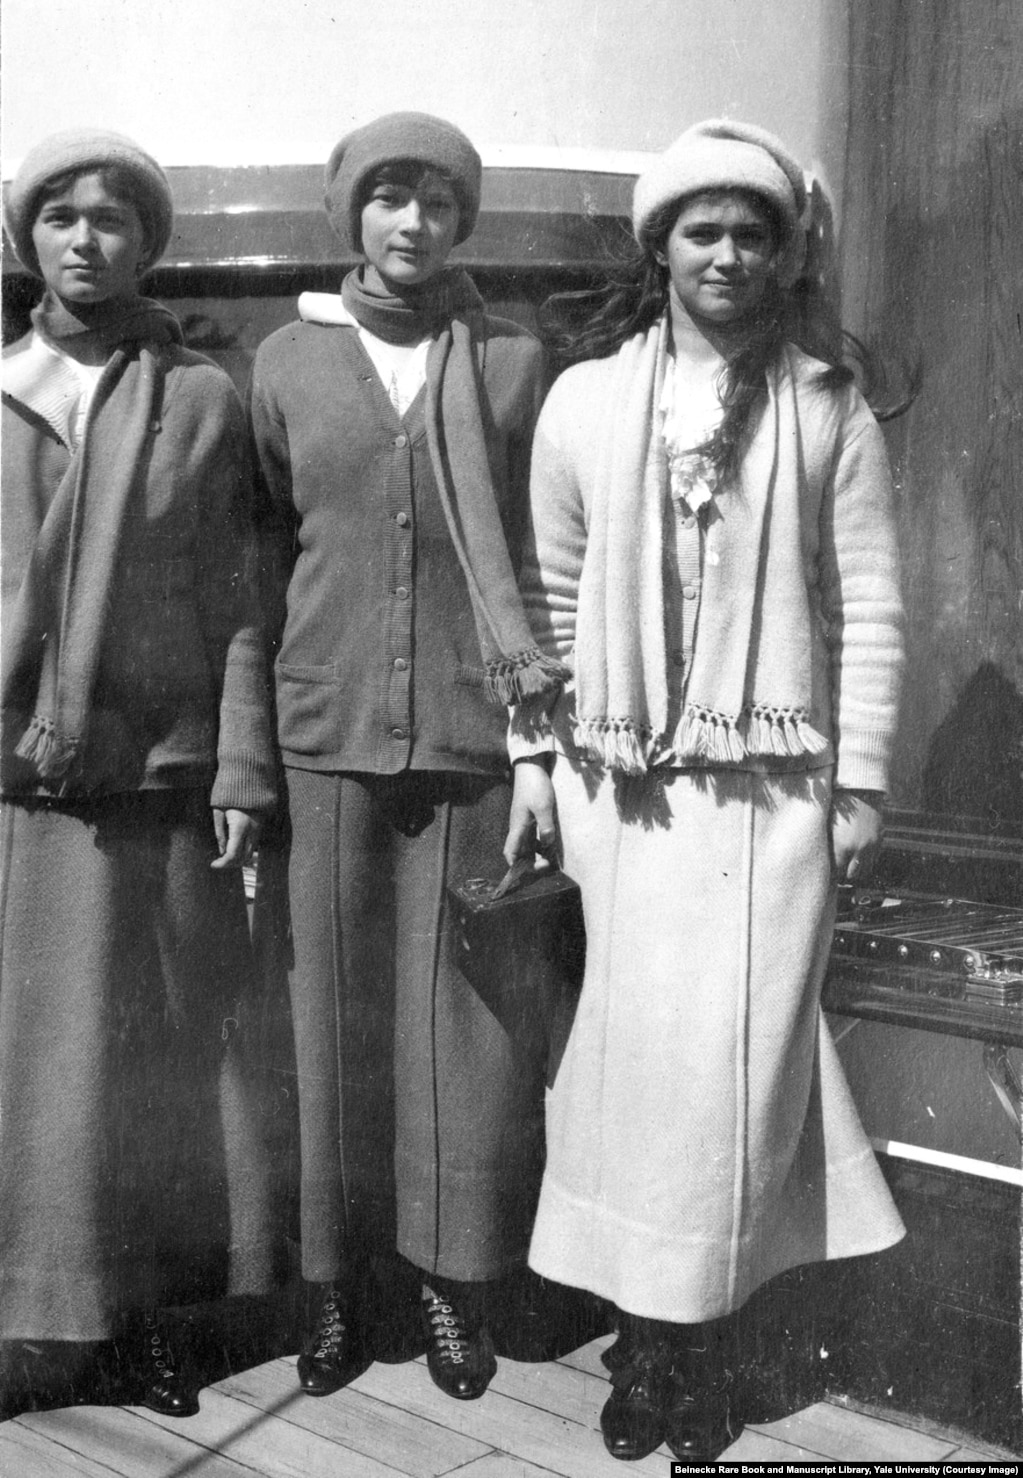 Grand Duchesses Olga, Tatyana, and Maria aboard the Standart in 1914. The sisters were 22, 21, and 19 years old when they were killed.